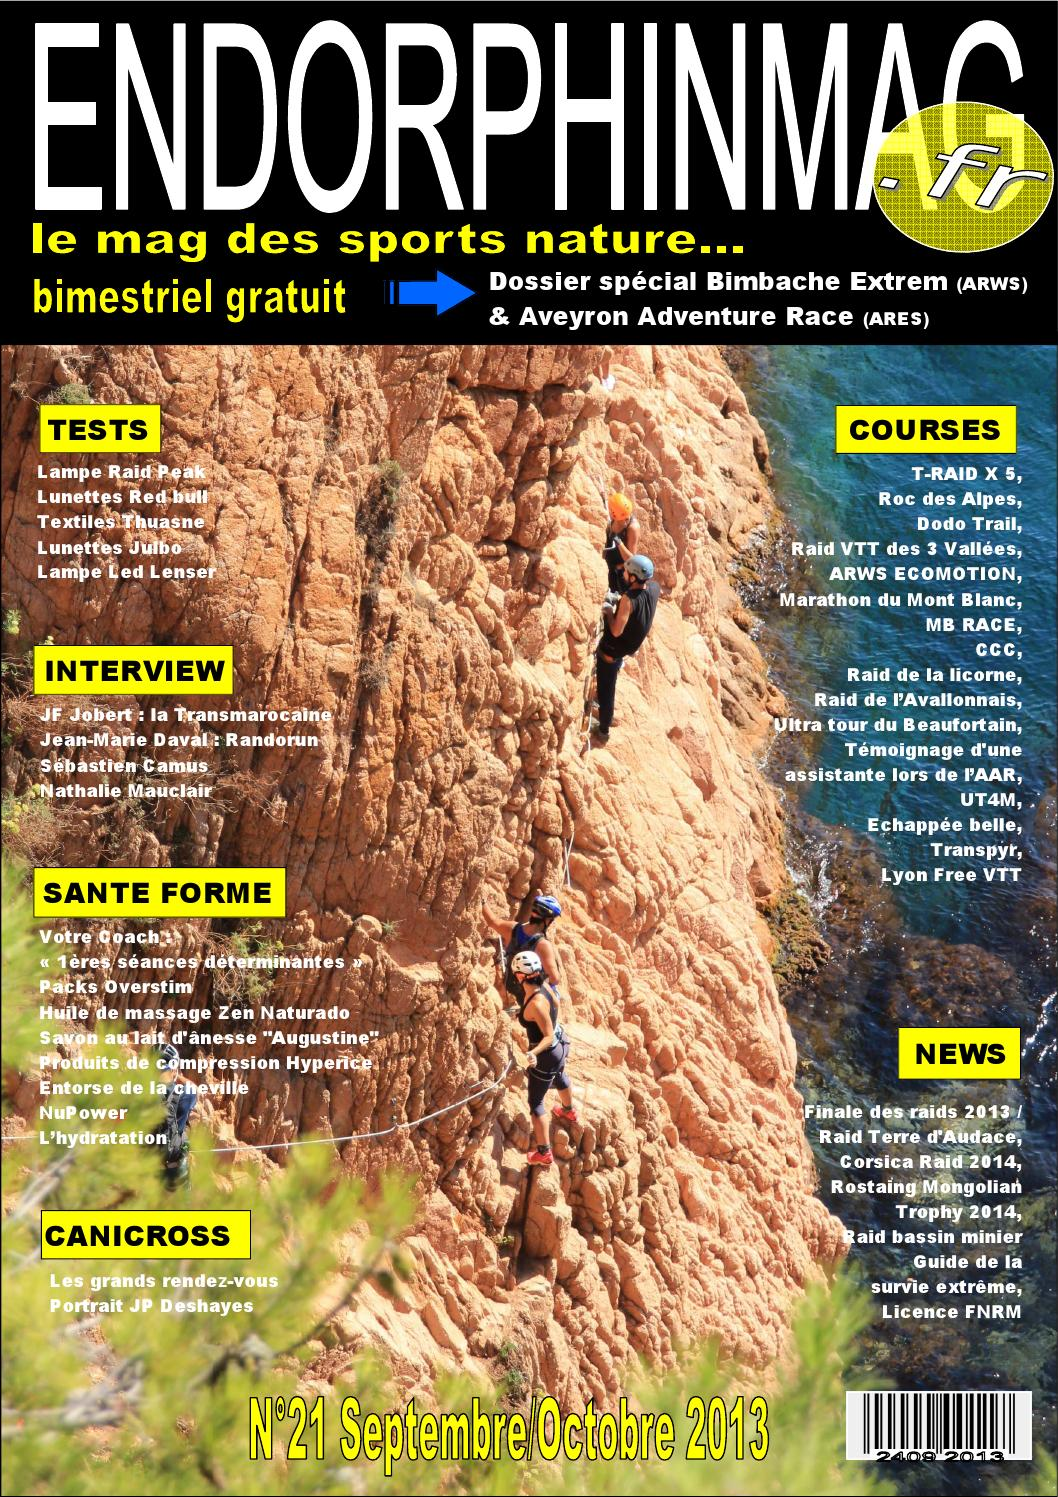 Septembreoctobre2013 by endorphinmag - issuu 8222a326bd91